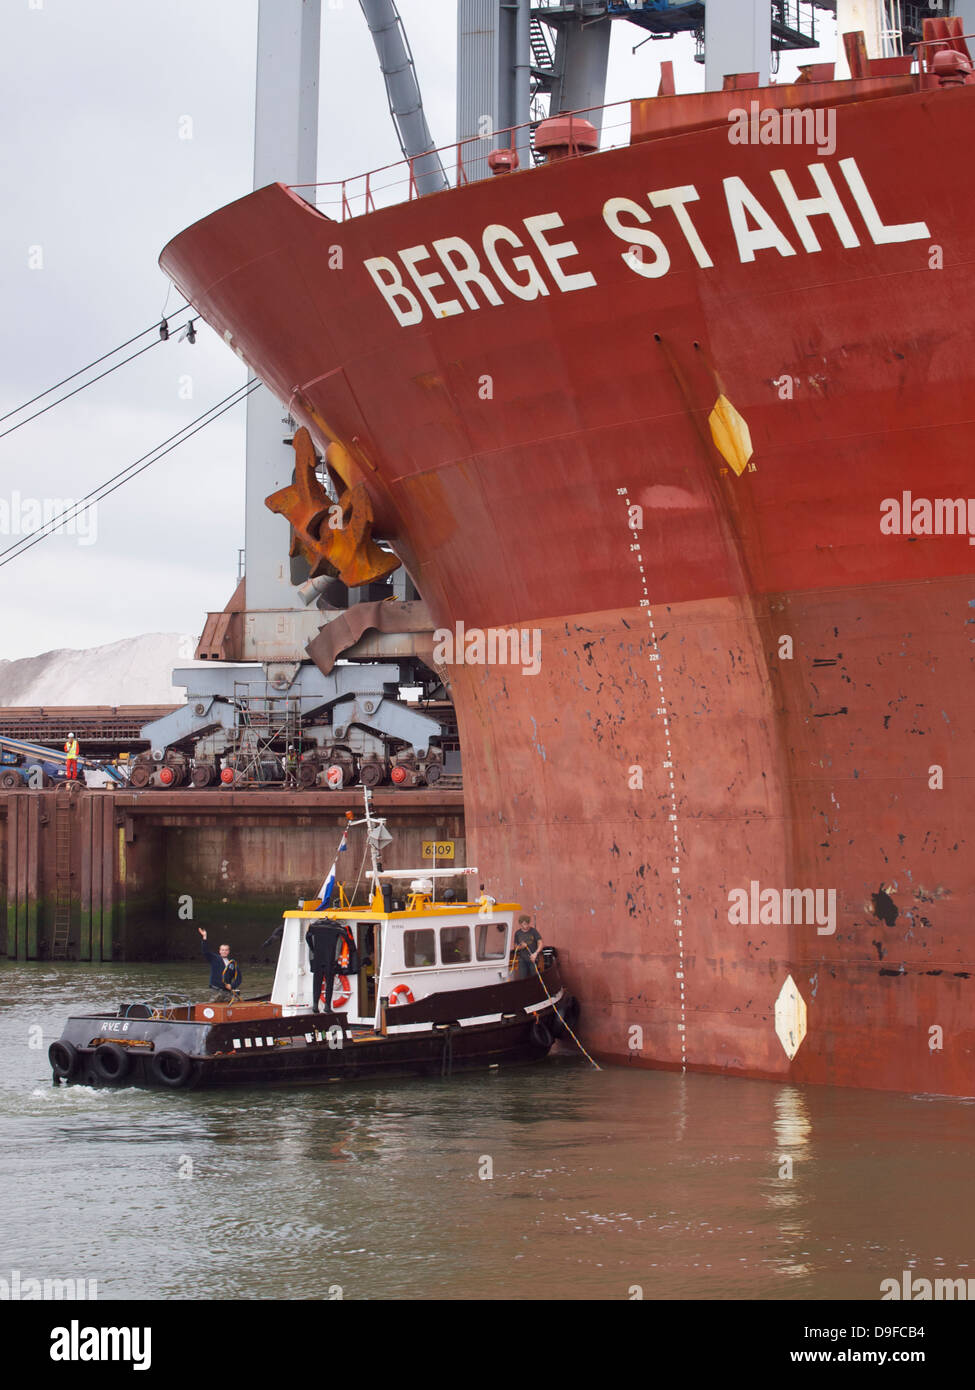 Men on their small boat preparing work on the Berge Stahl one of the largest bulk carriers in the world. Port of - Stock Image